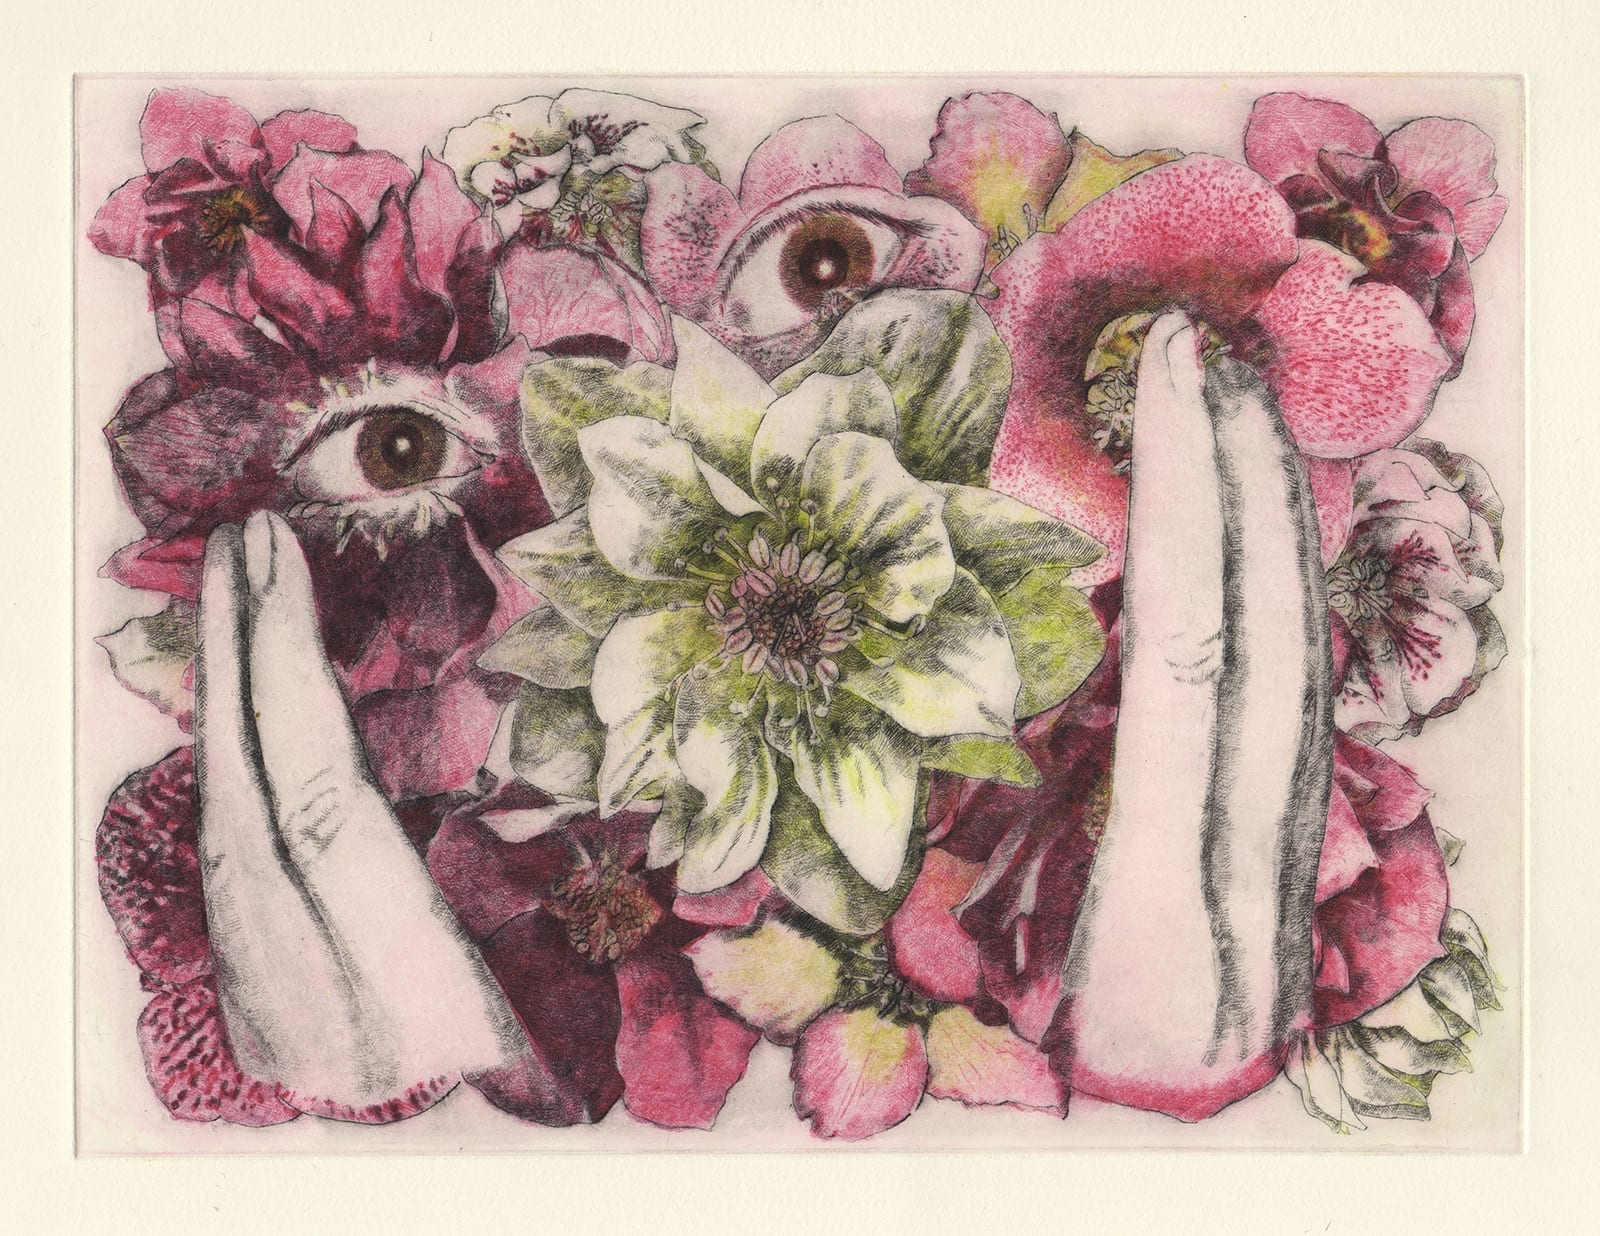 Christmas rose for anniversary (drypoint etching by Yaemi Shigyo)